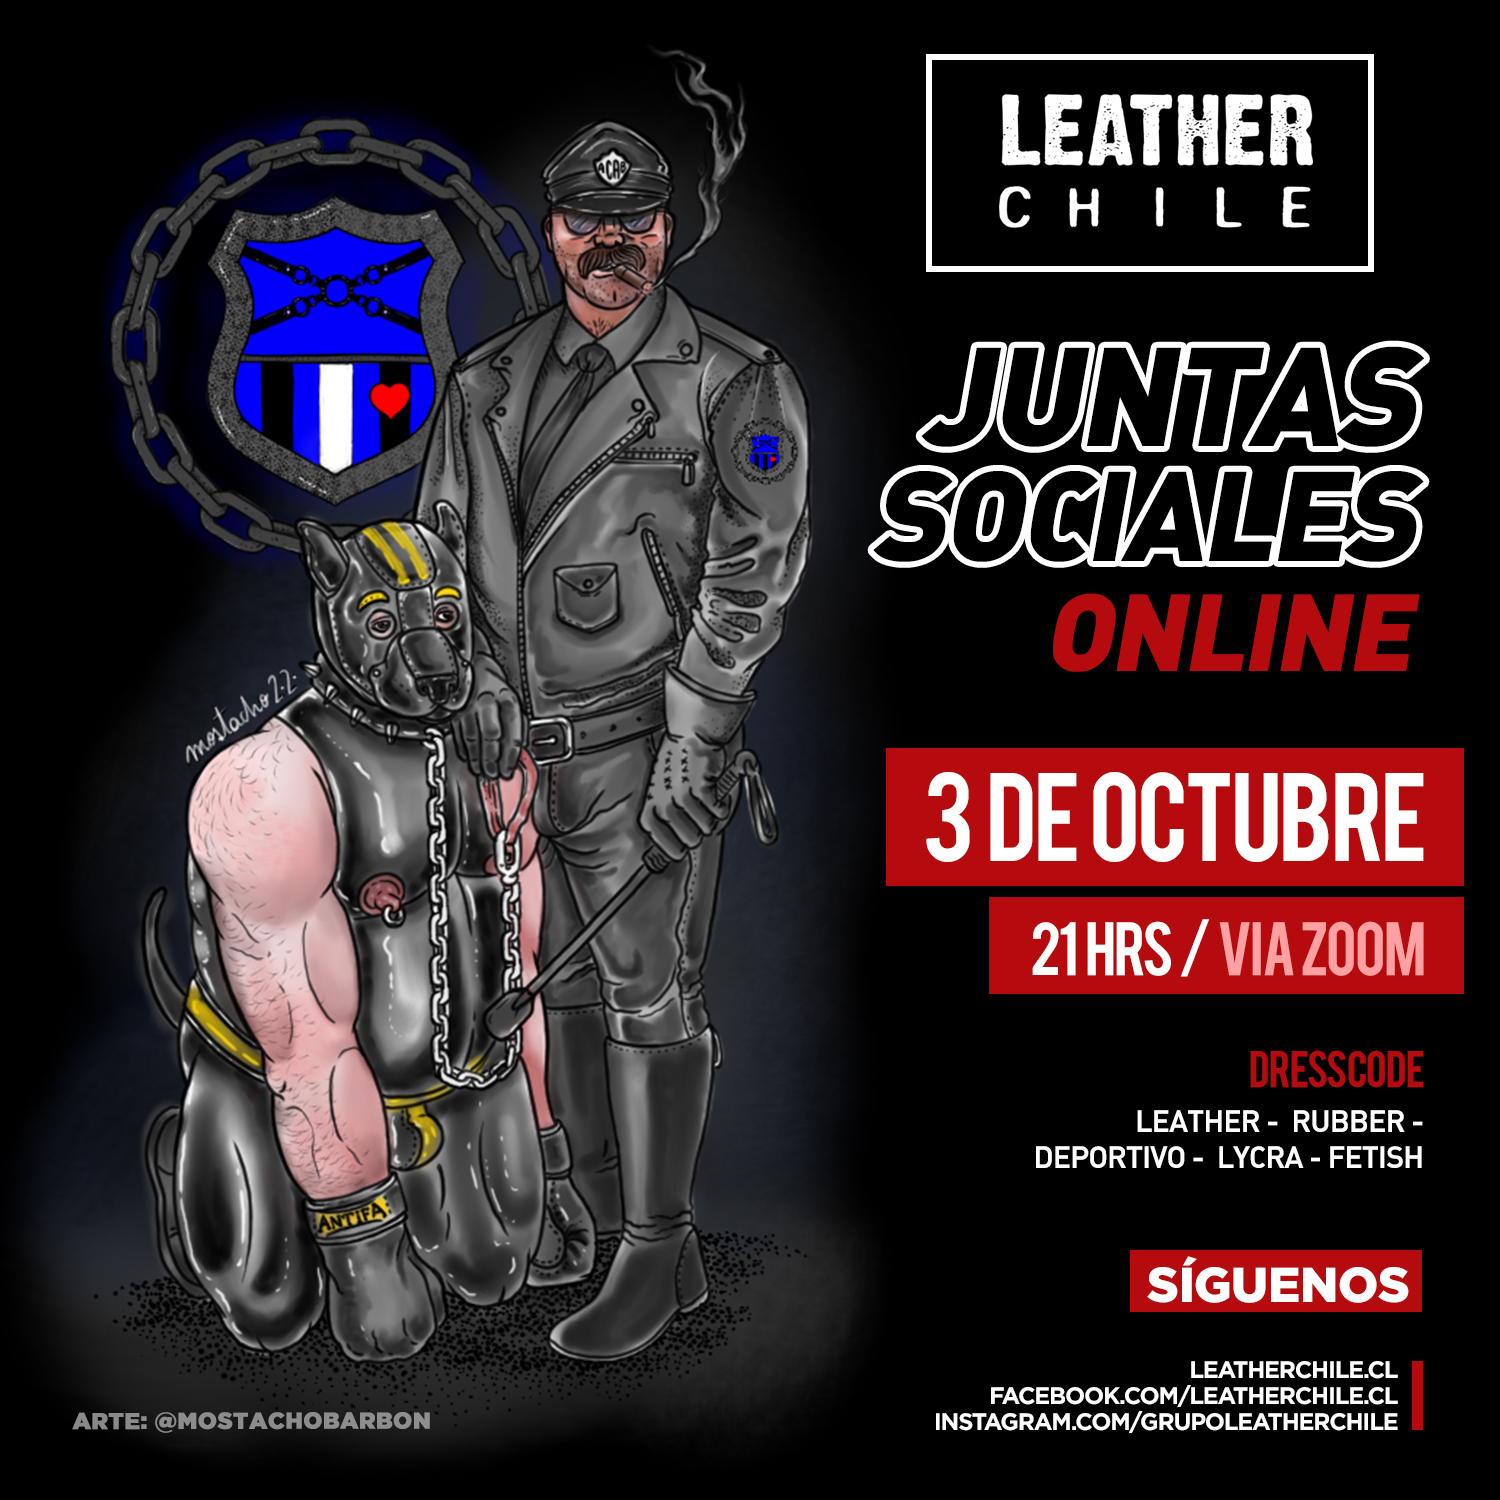 Leather Chile